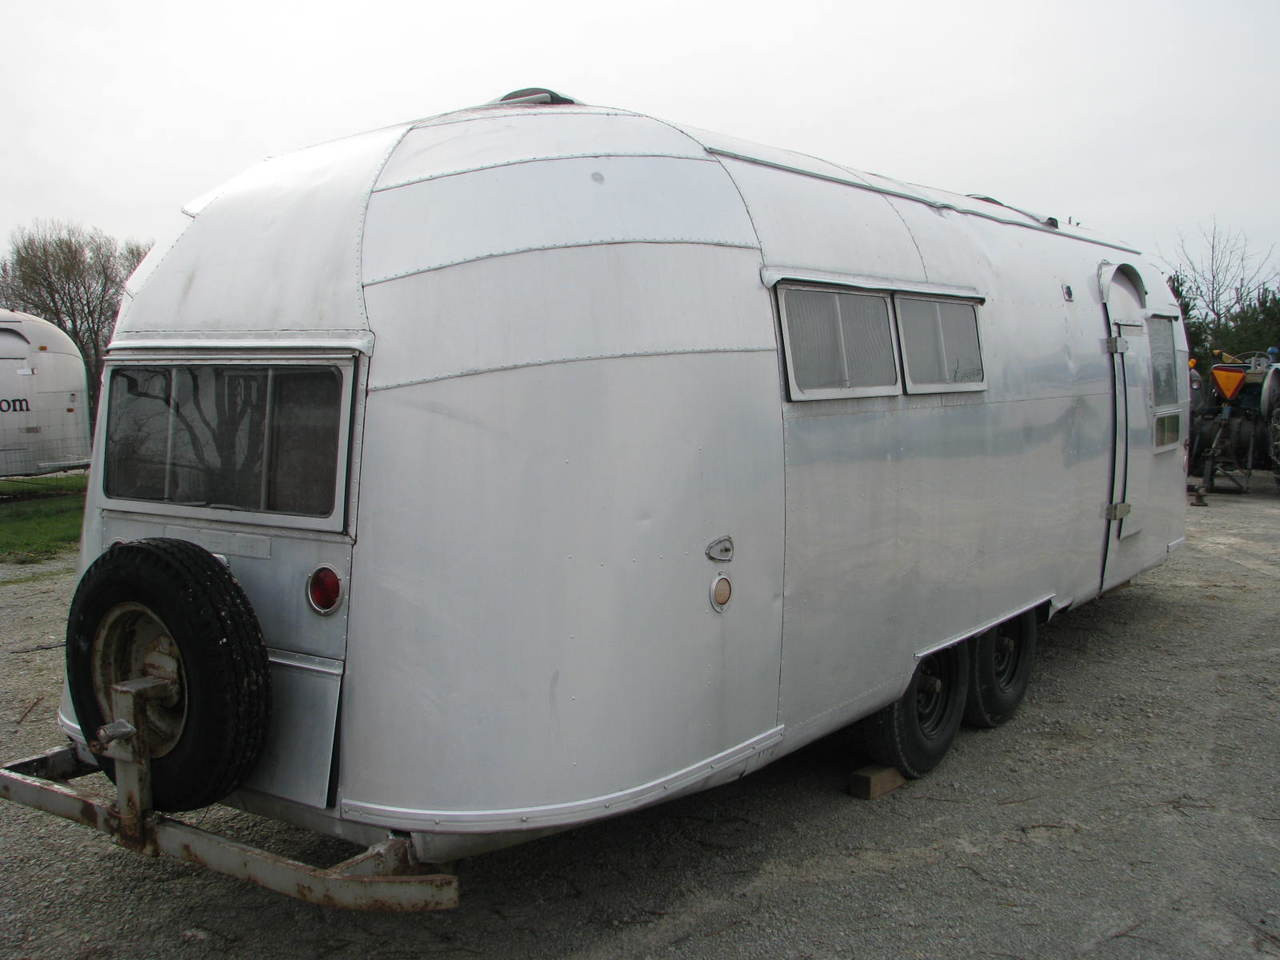 1956 Airstream 26' Overlander - Whale Tail  #6697               (SOLD)